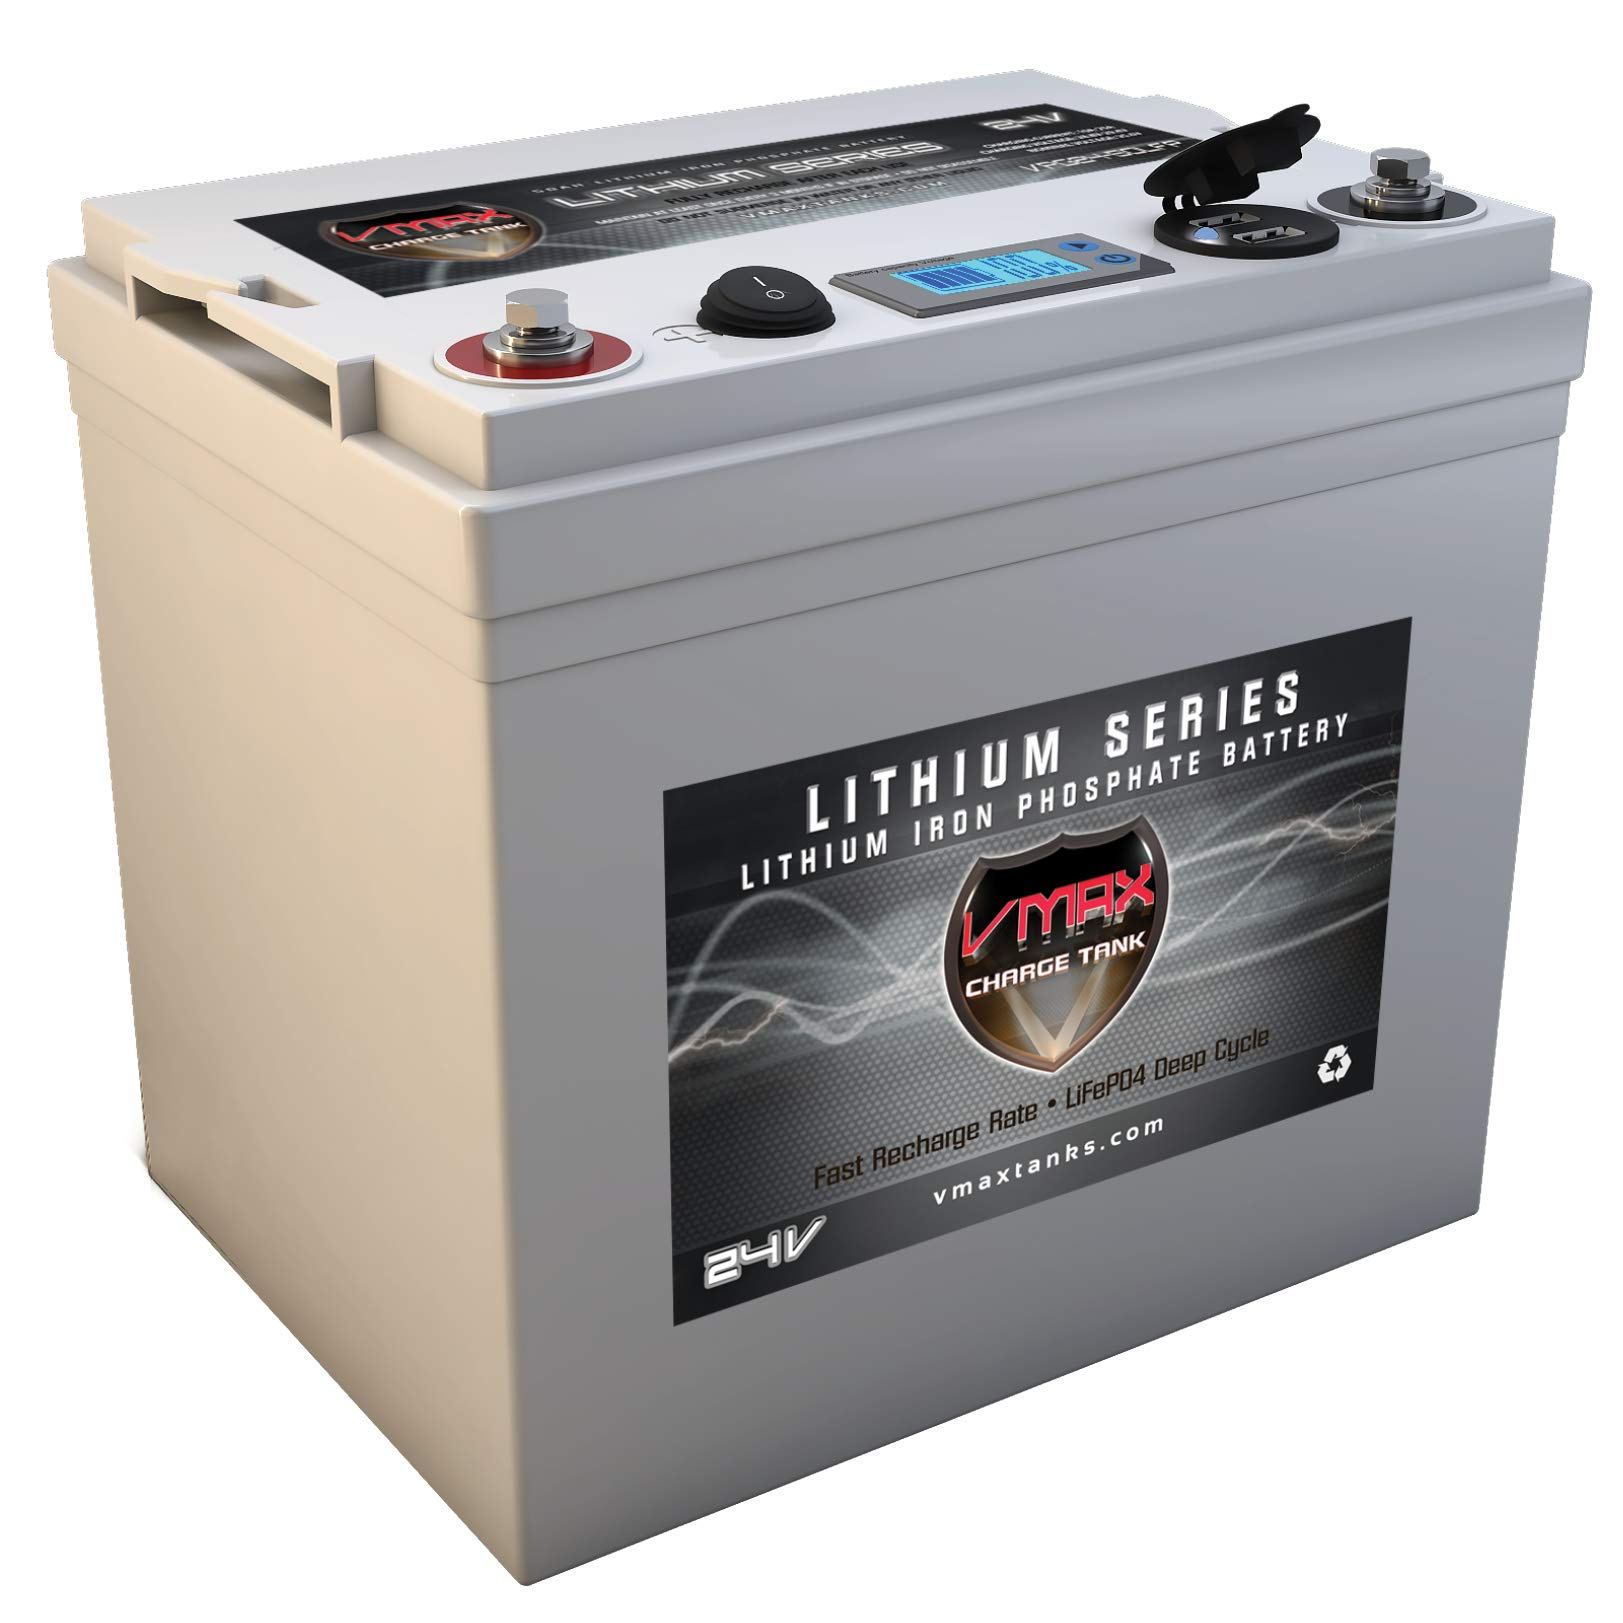 VMAX VPG24C-50LFP for 24 Volt Battery for DC Power Supply 24V 50Ah LiFePo4 Battery + Charger: Lithium-Iron Phosphate Battery w/BMS, USB Outputs, LCD Display (24V 50Ah LiFePo4, Weighs 21lbs) by VMAXTANKS (Image #2)